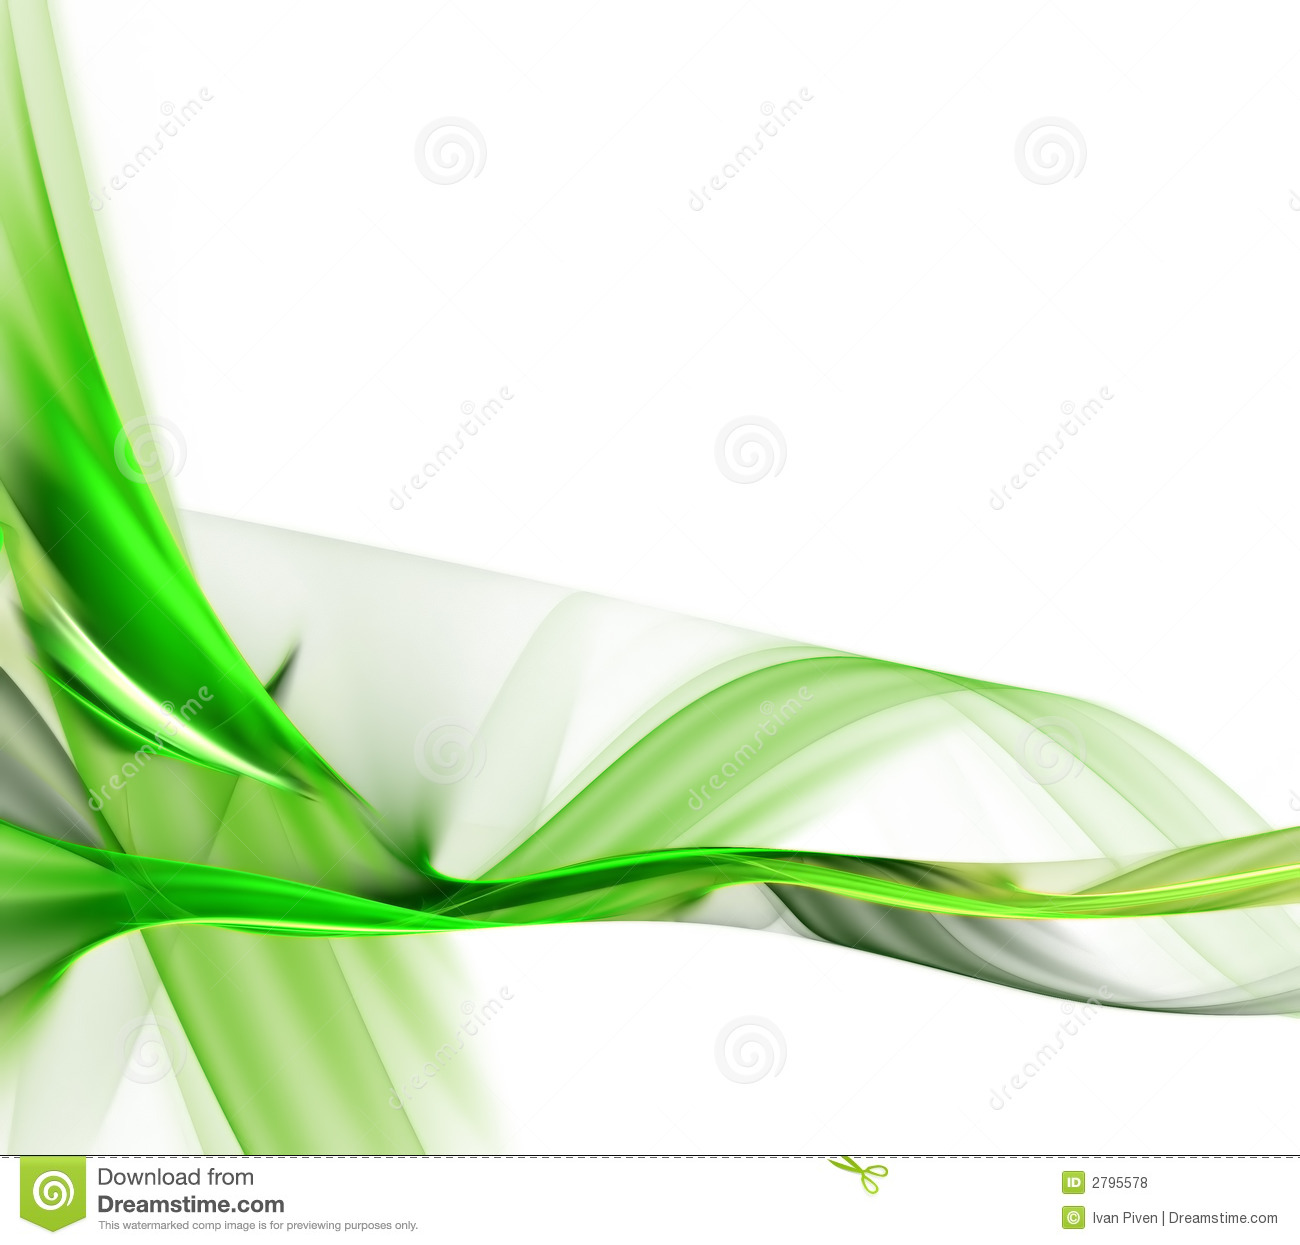 Beautiful Design Background Royalty Free Stock Photos - Image: 2795578